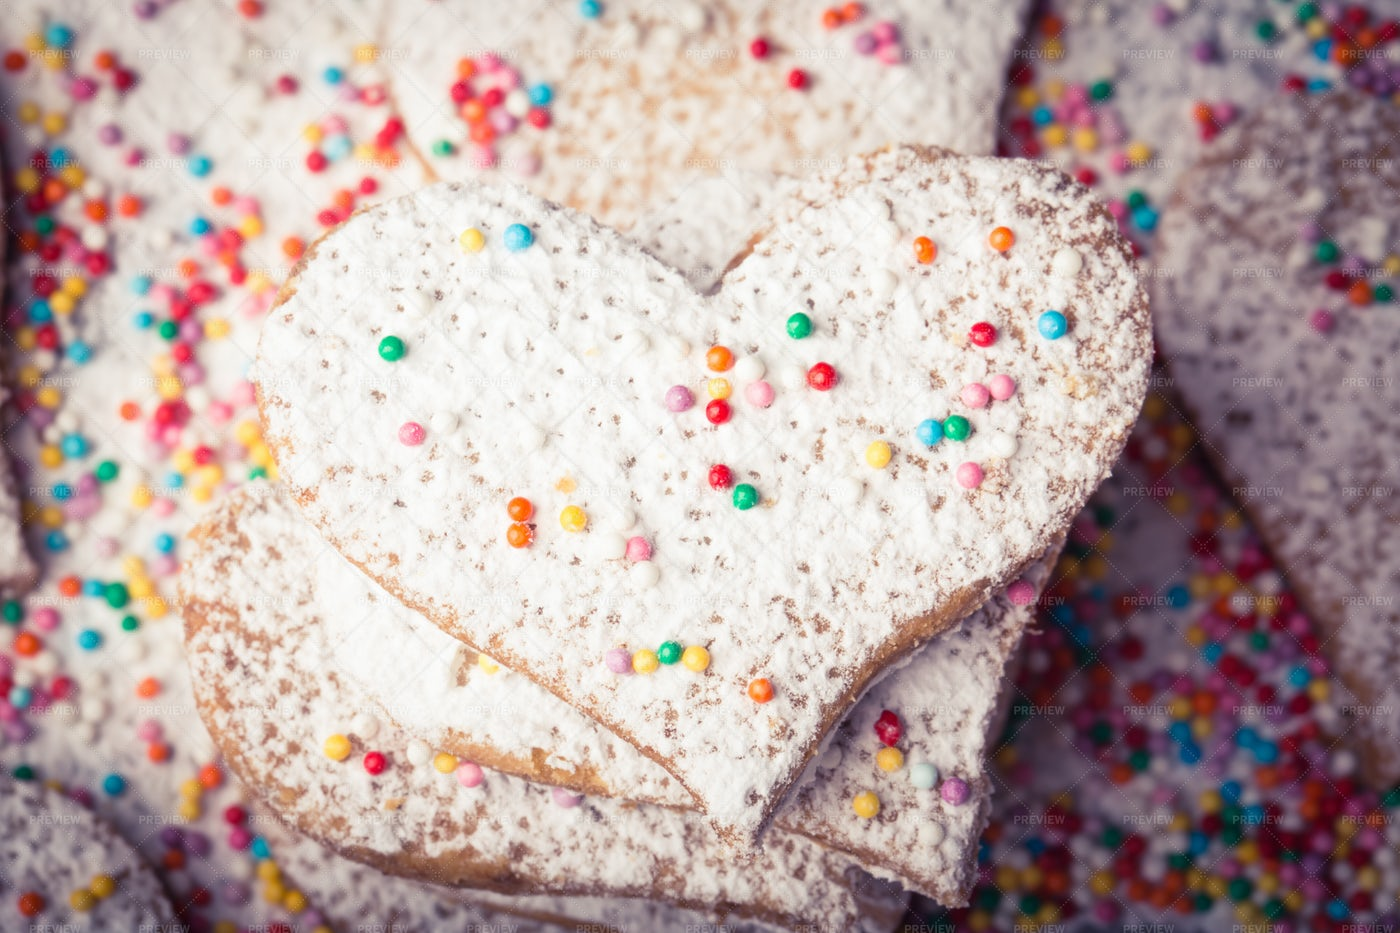 Cookies With Sprinkles: Stock Photos